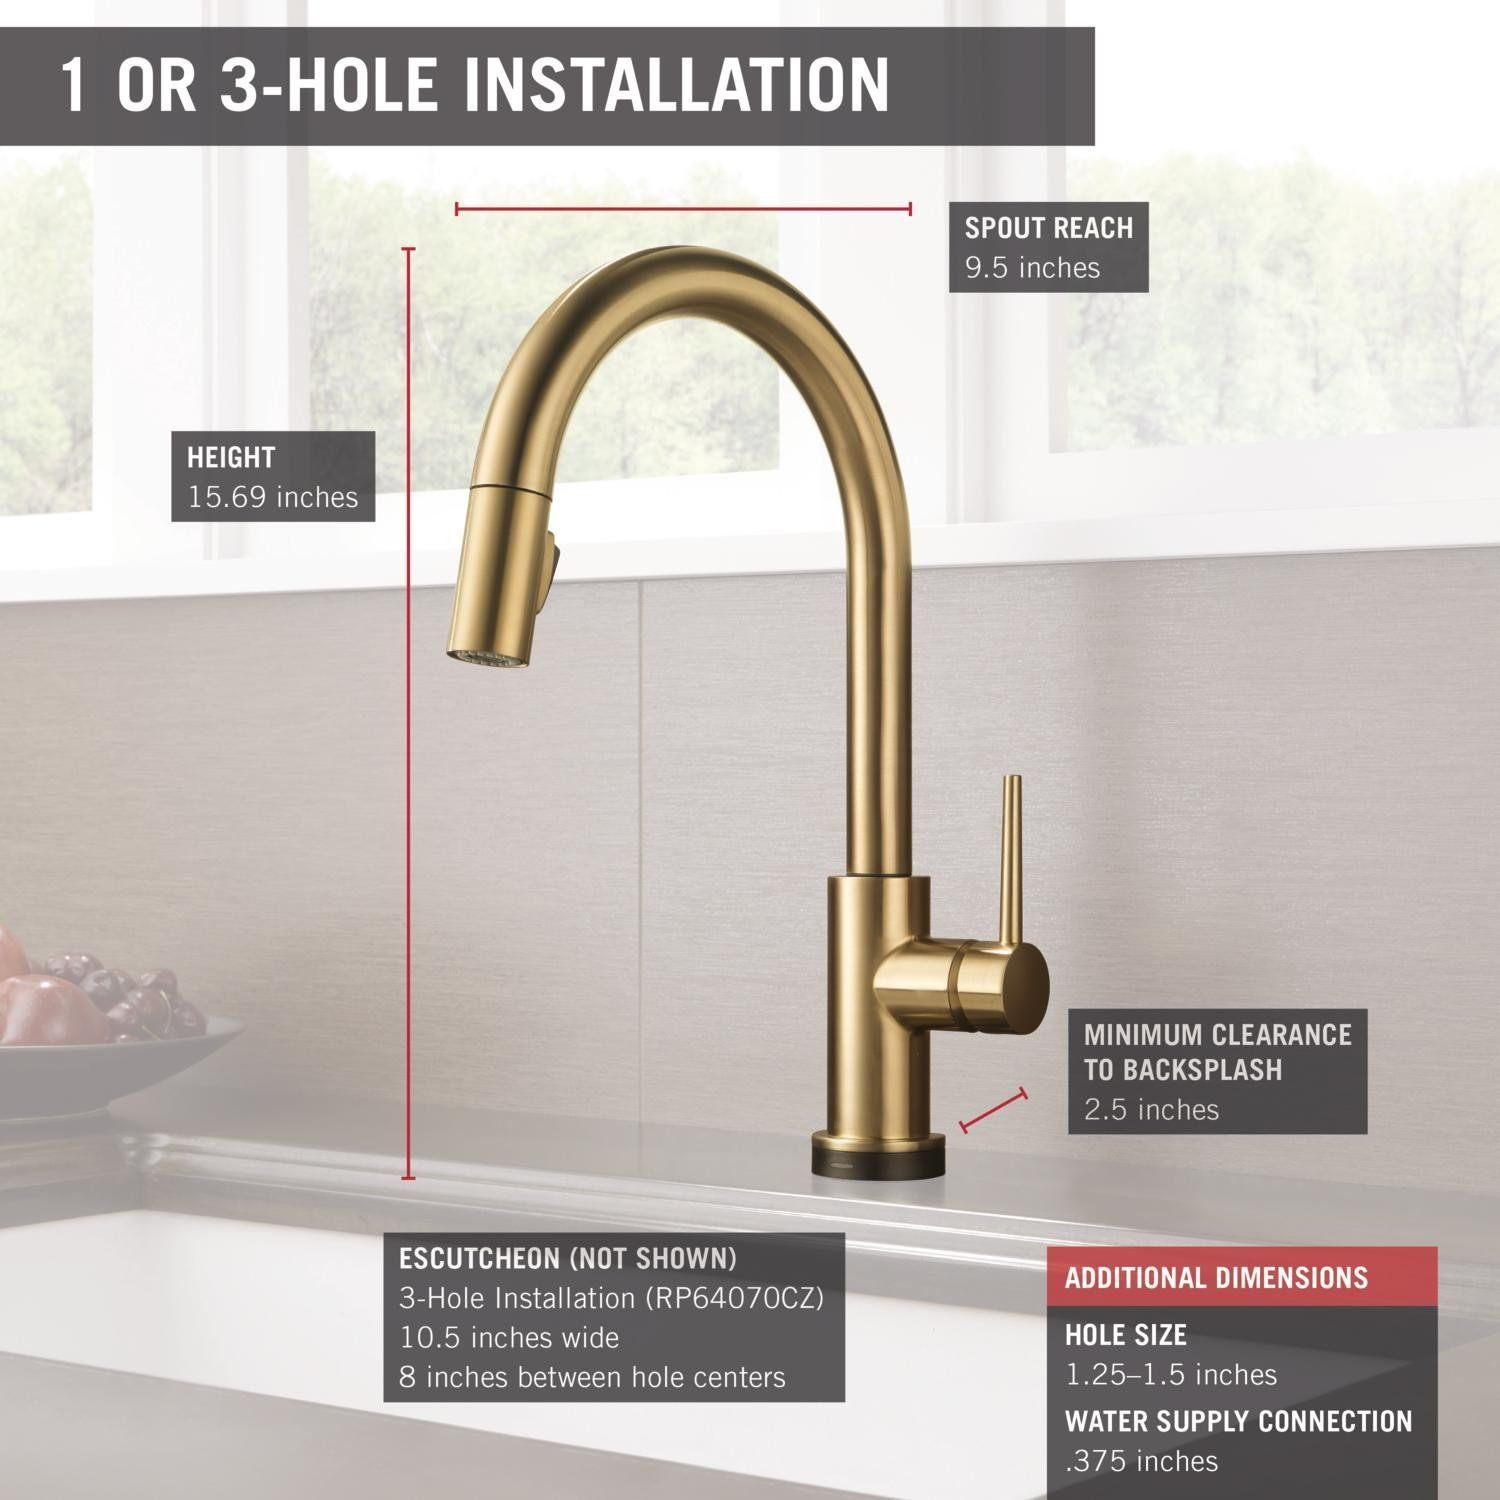 Delta Faucet 9159t Cz Dst Trinsic Single Handle Pull Down Kitchen Faucet Featuring Touch2o Technology Champagne Bron Delta Faucets Faucet Touch Kitchen Faucet